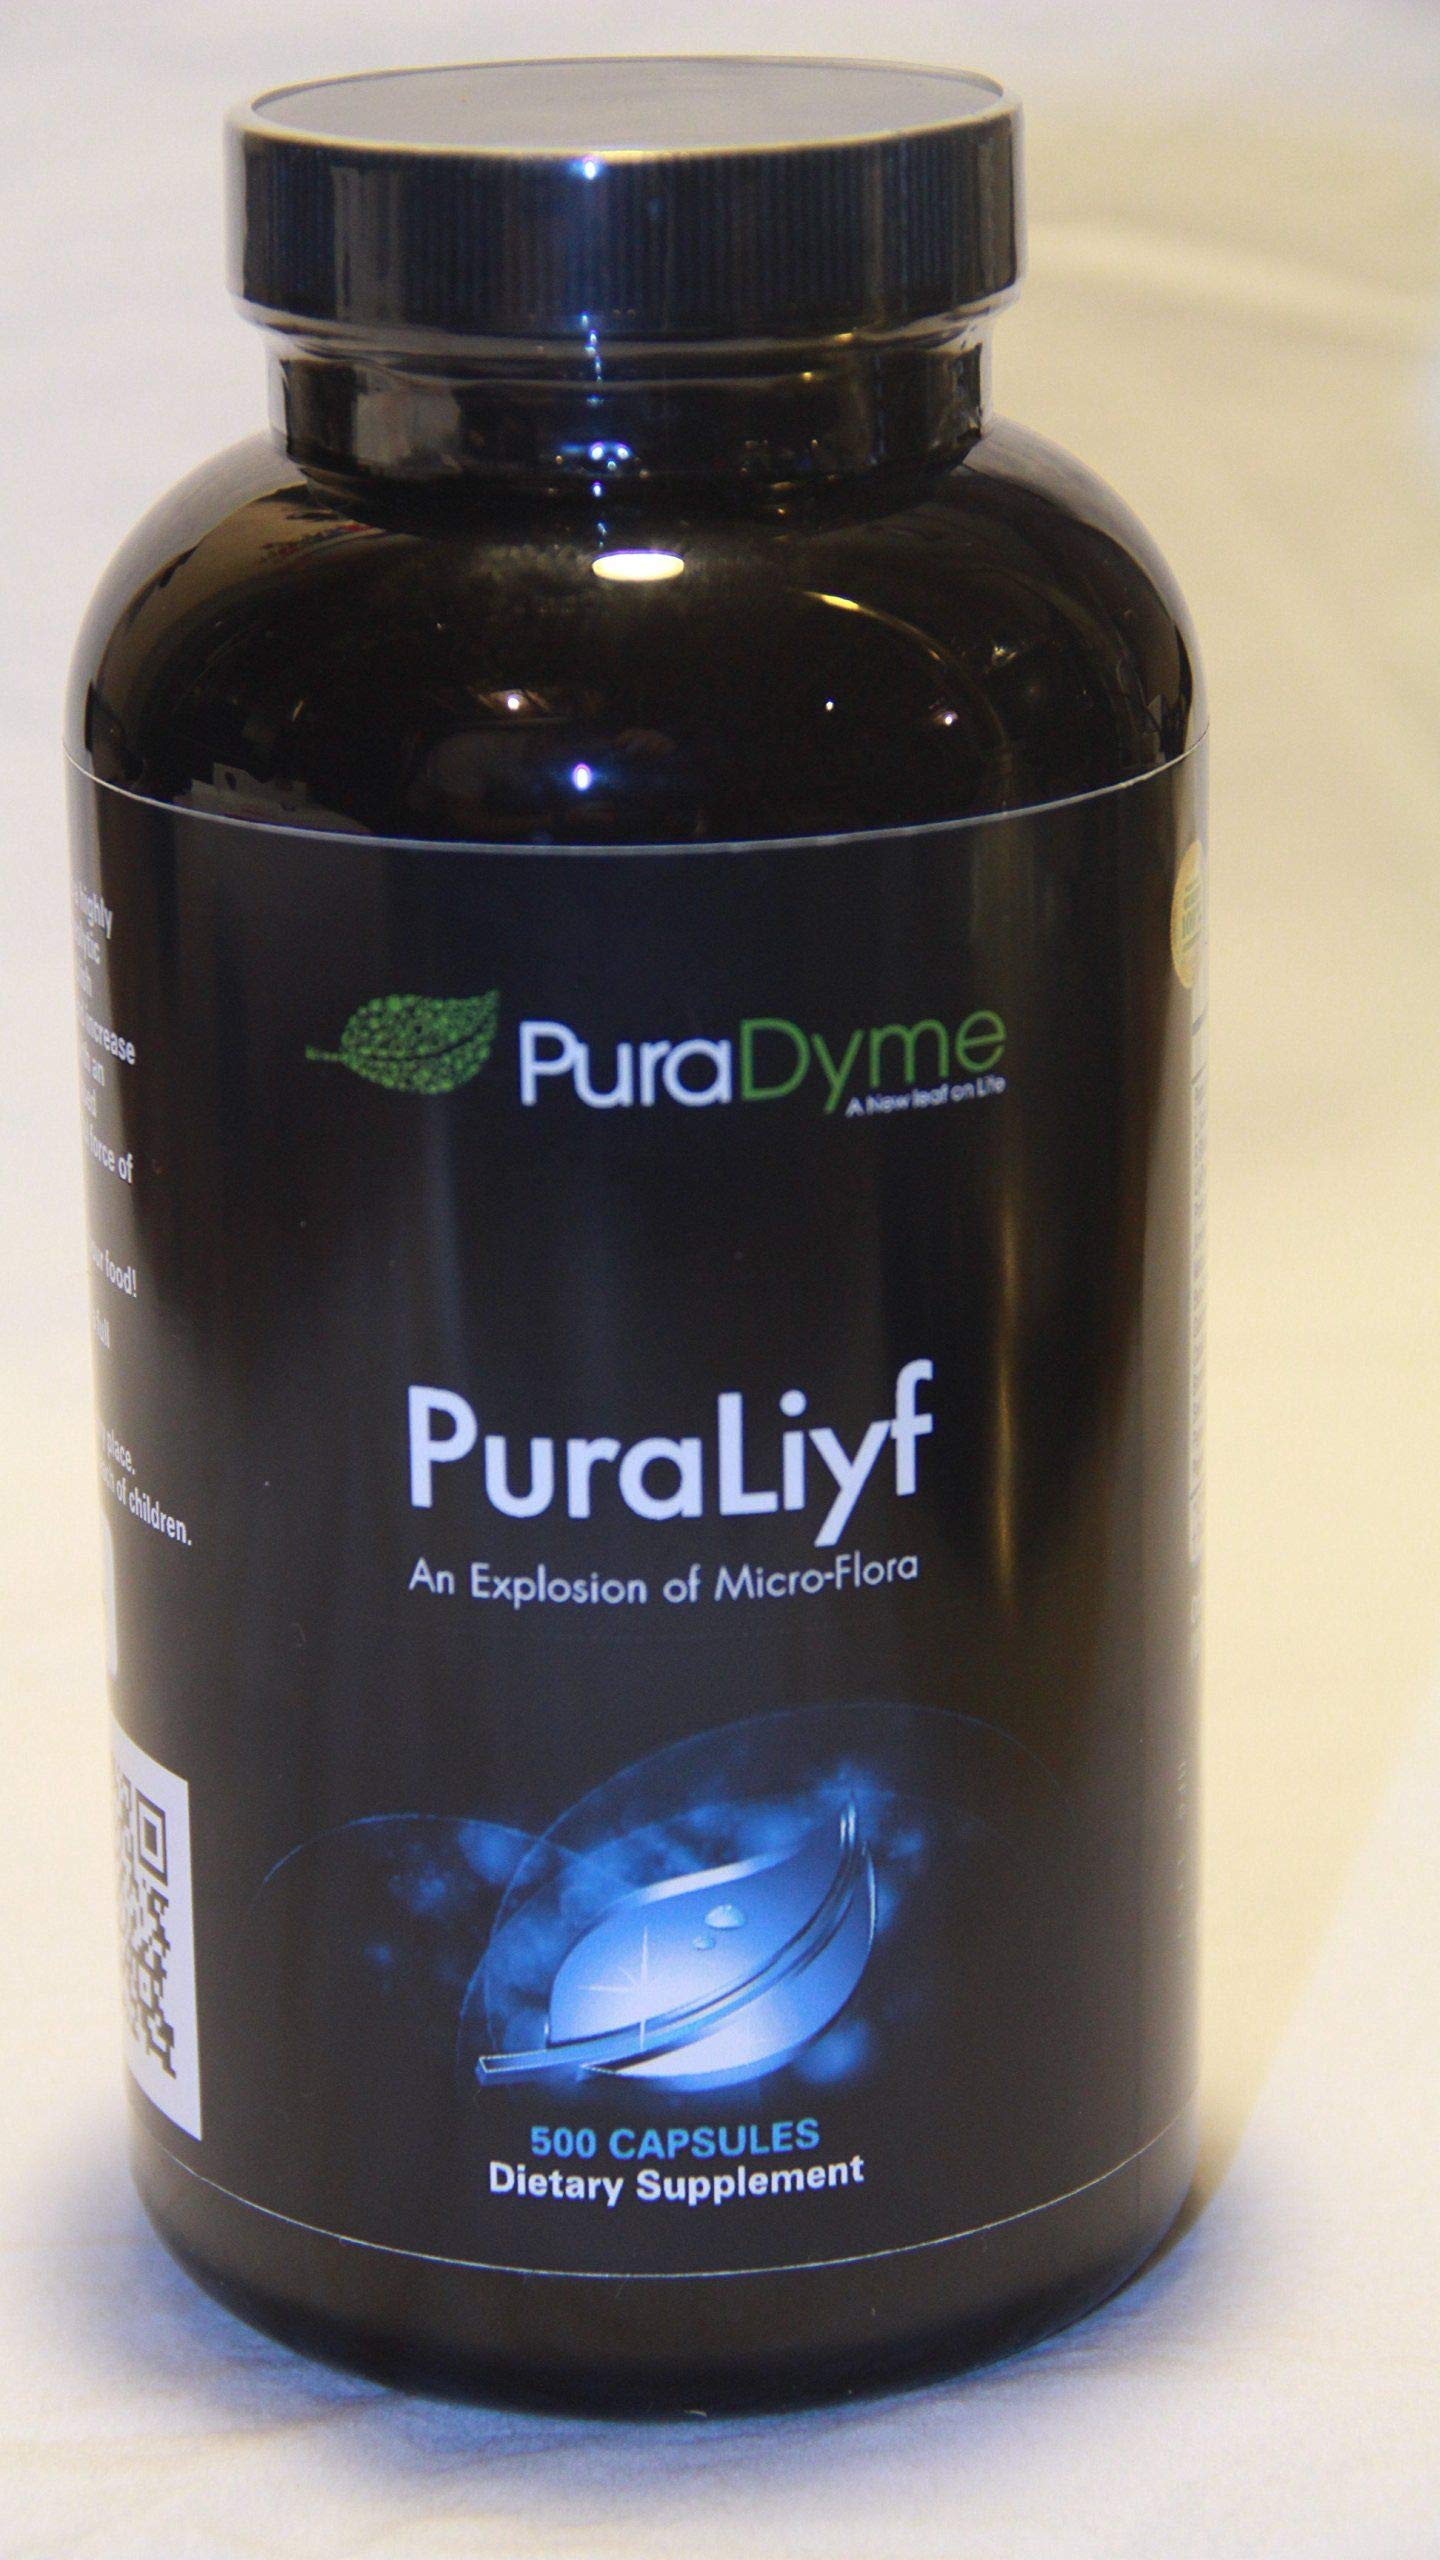 Amazon.com: PuraLiyf 500 veggie capsules By Lou Corona: Health & Personal Care